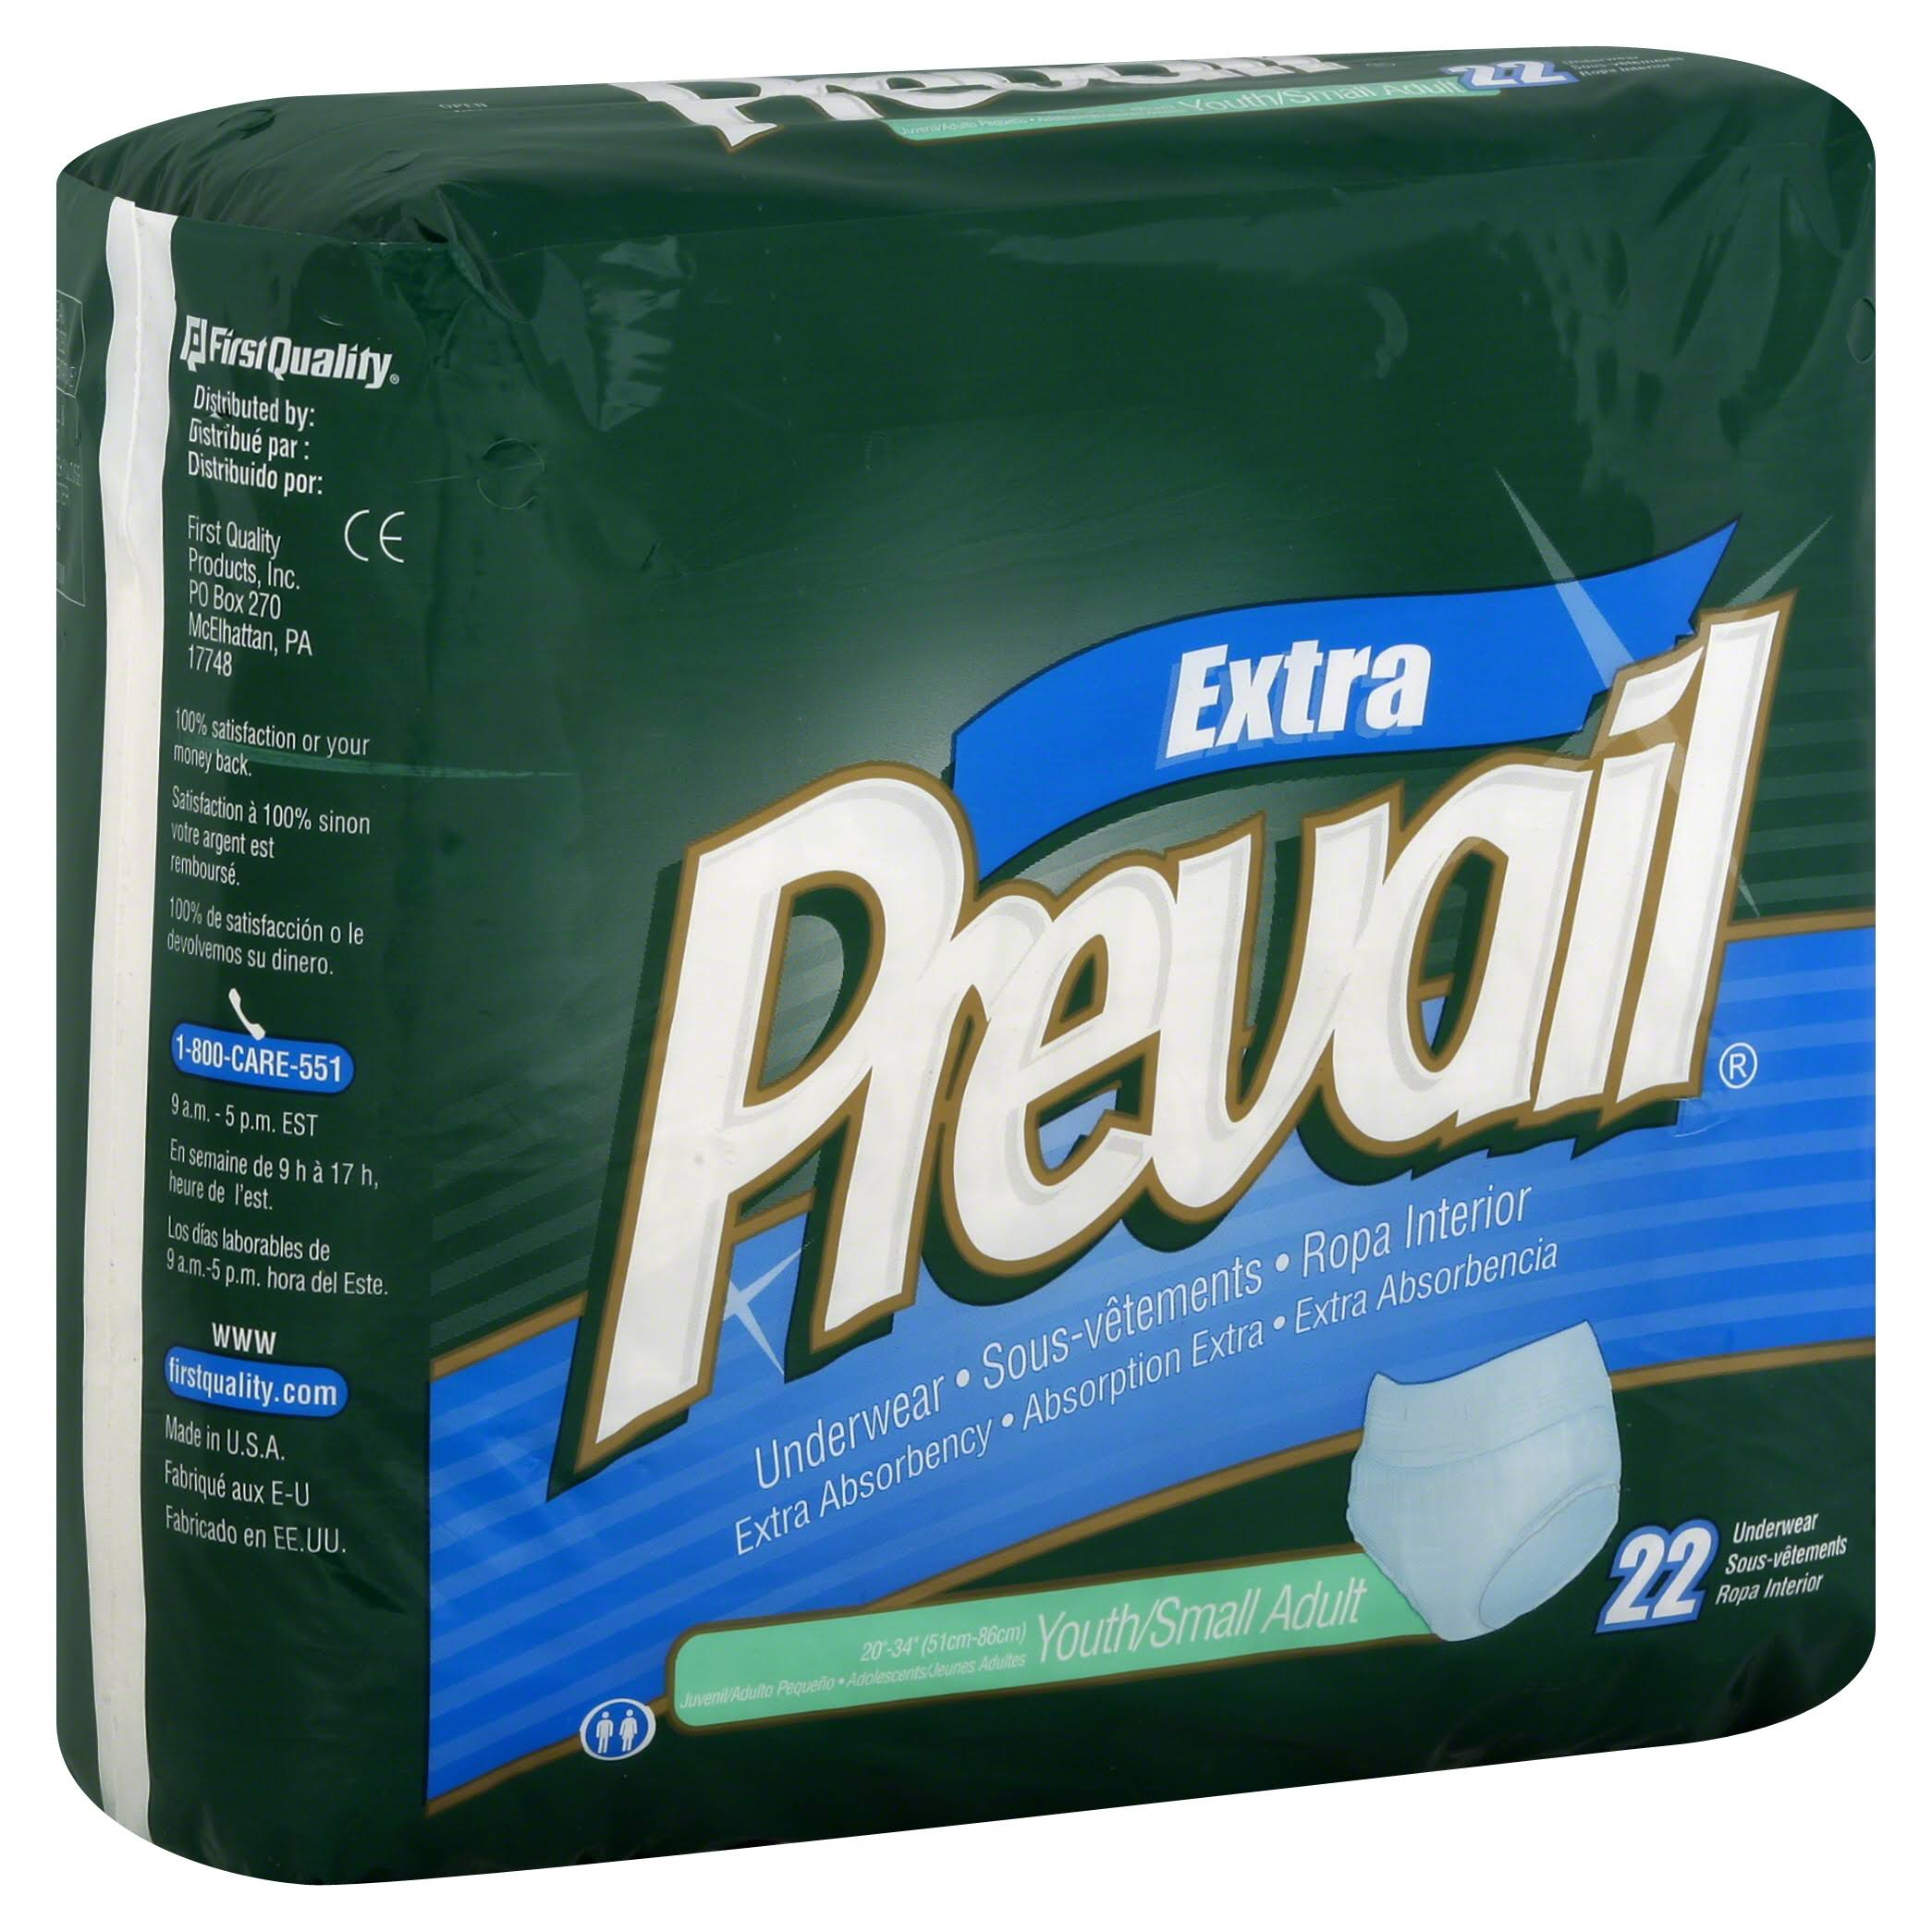 Prevail Extra Absorbency Underwear - Youth/Small Adult, 22 ct